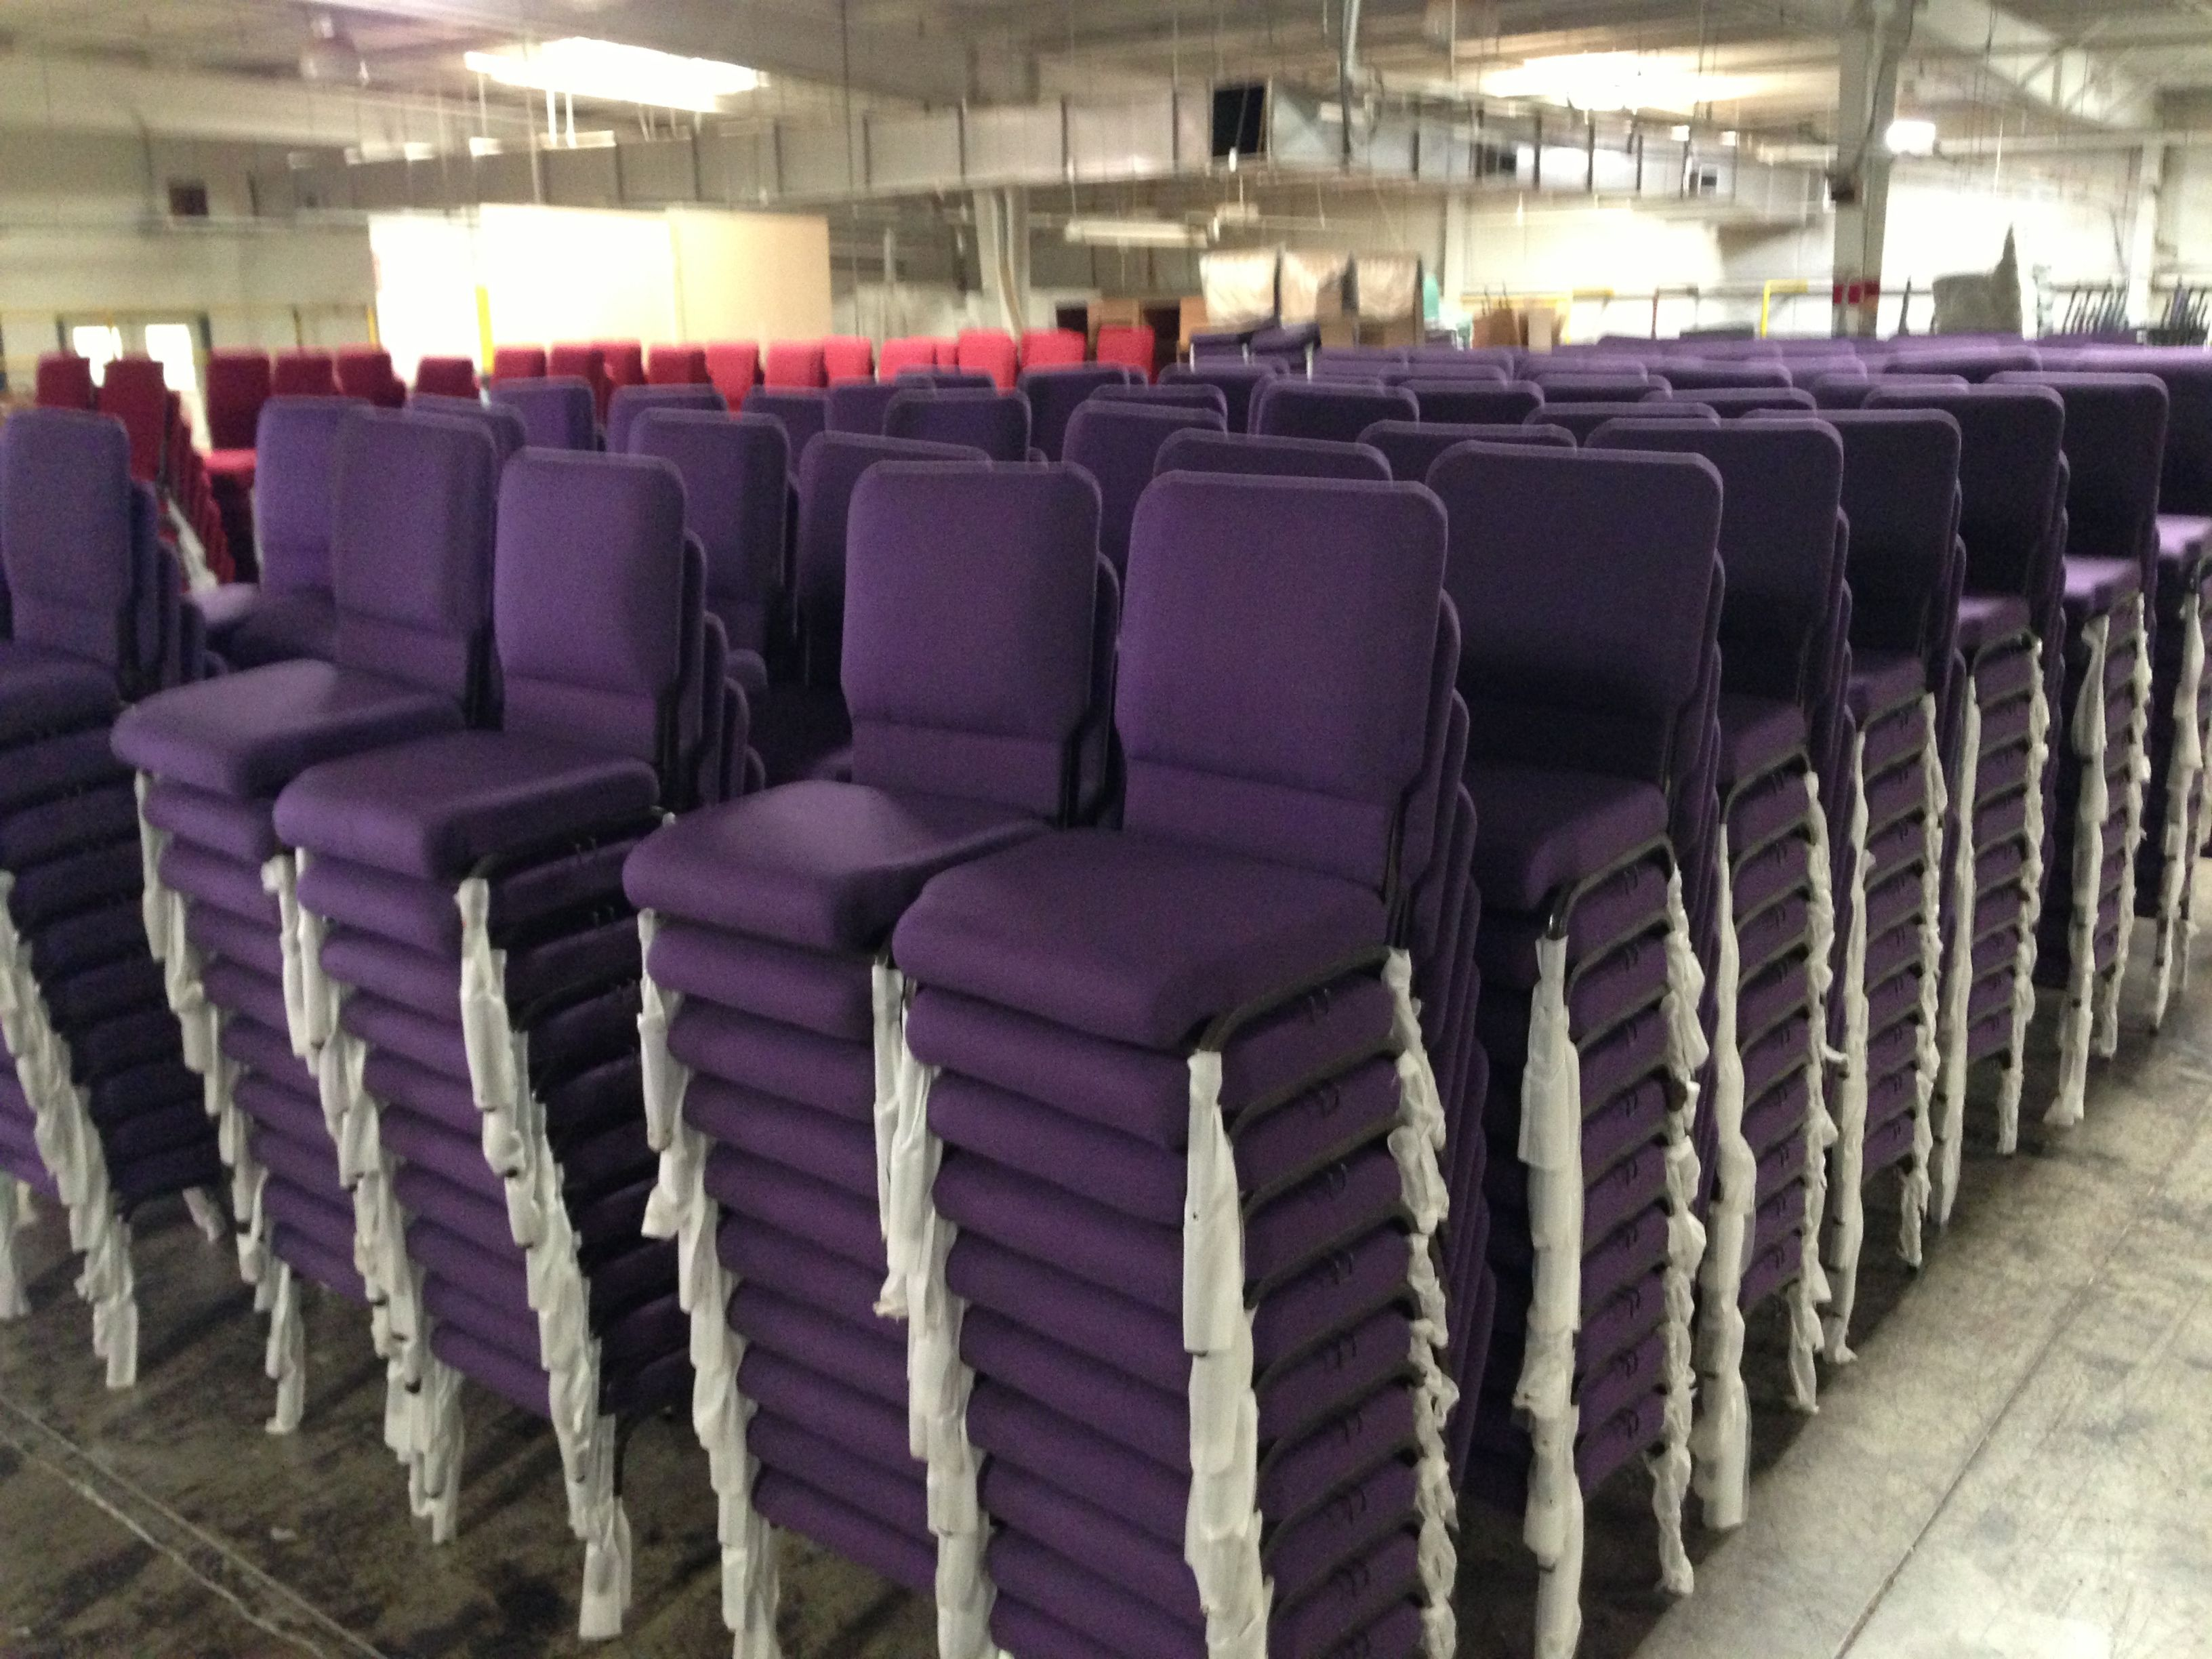 Lovely Our Royal Purple Worship Chair Offered At ChurchMart.com. Here We Have A Few